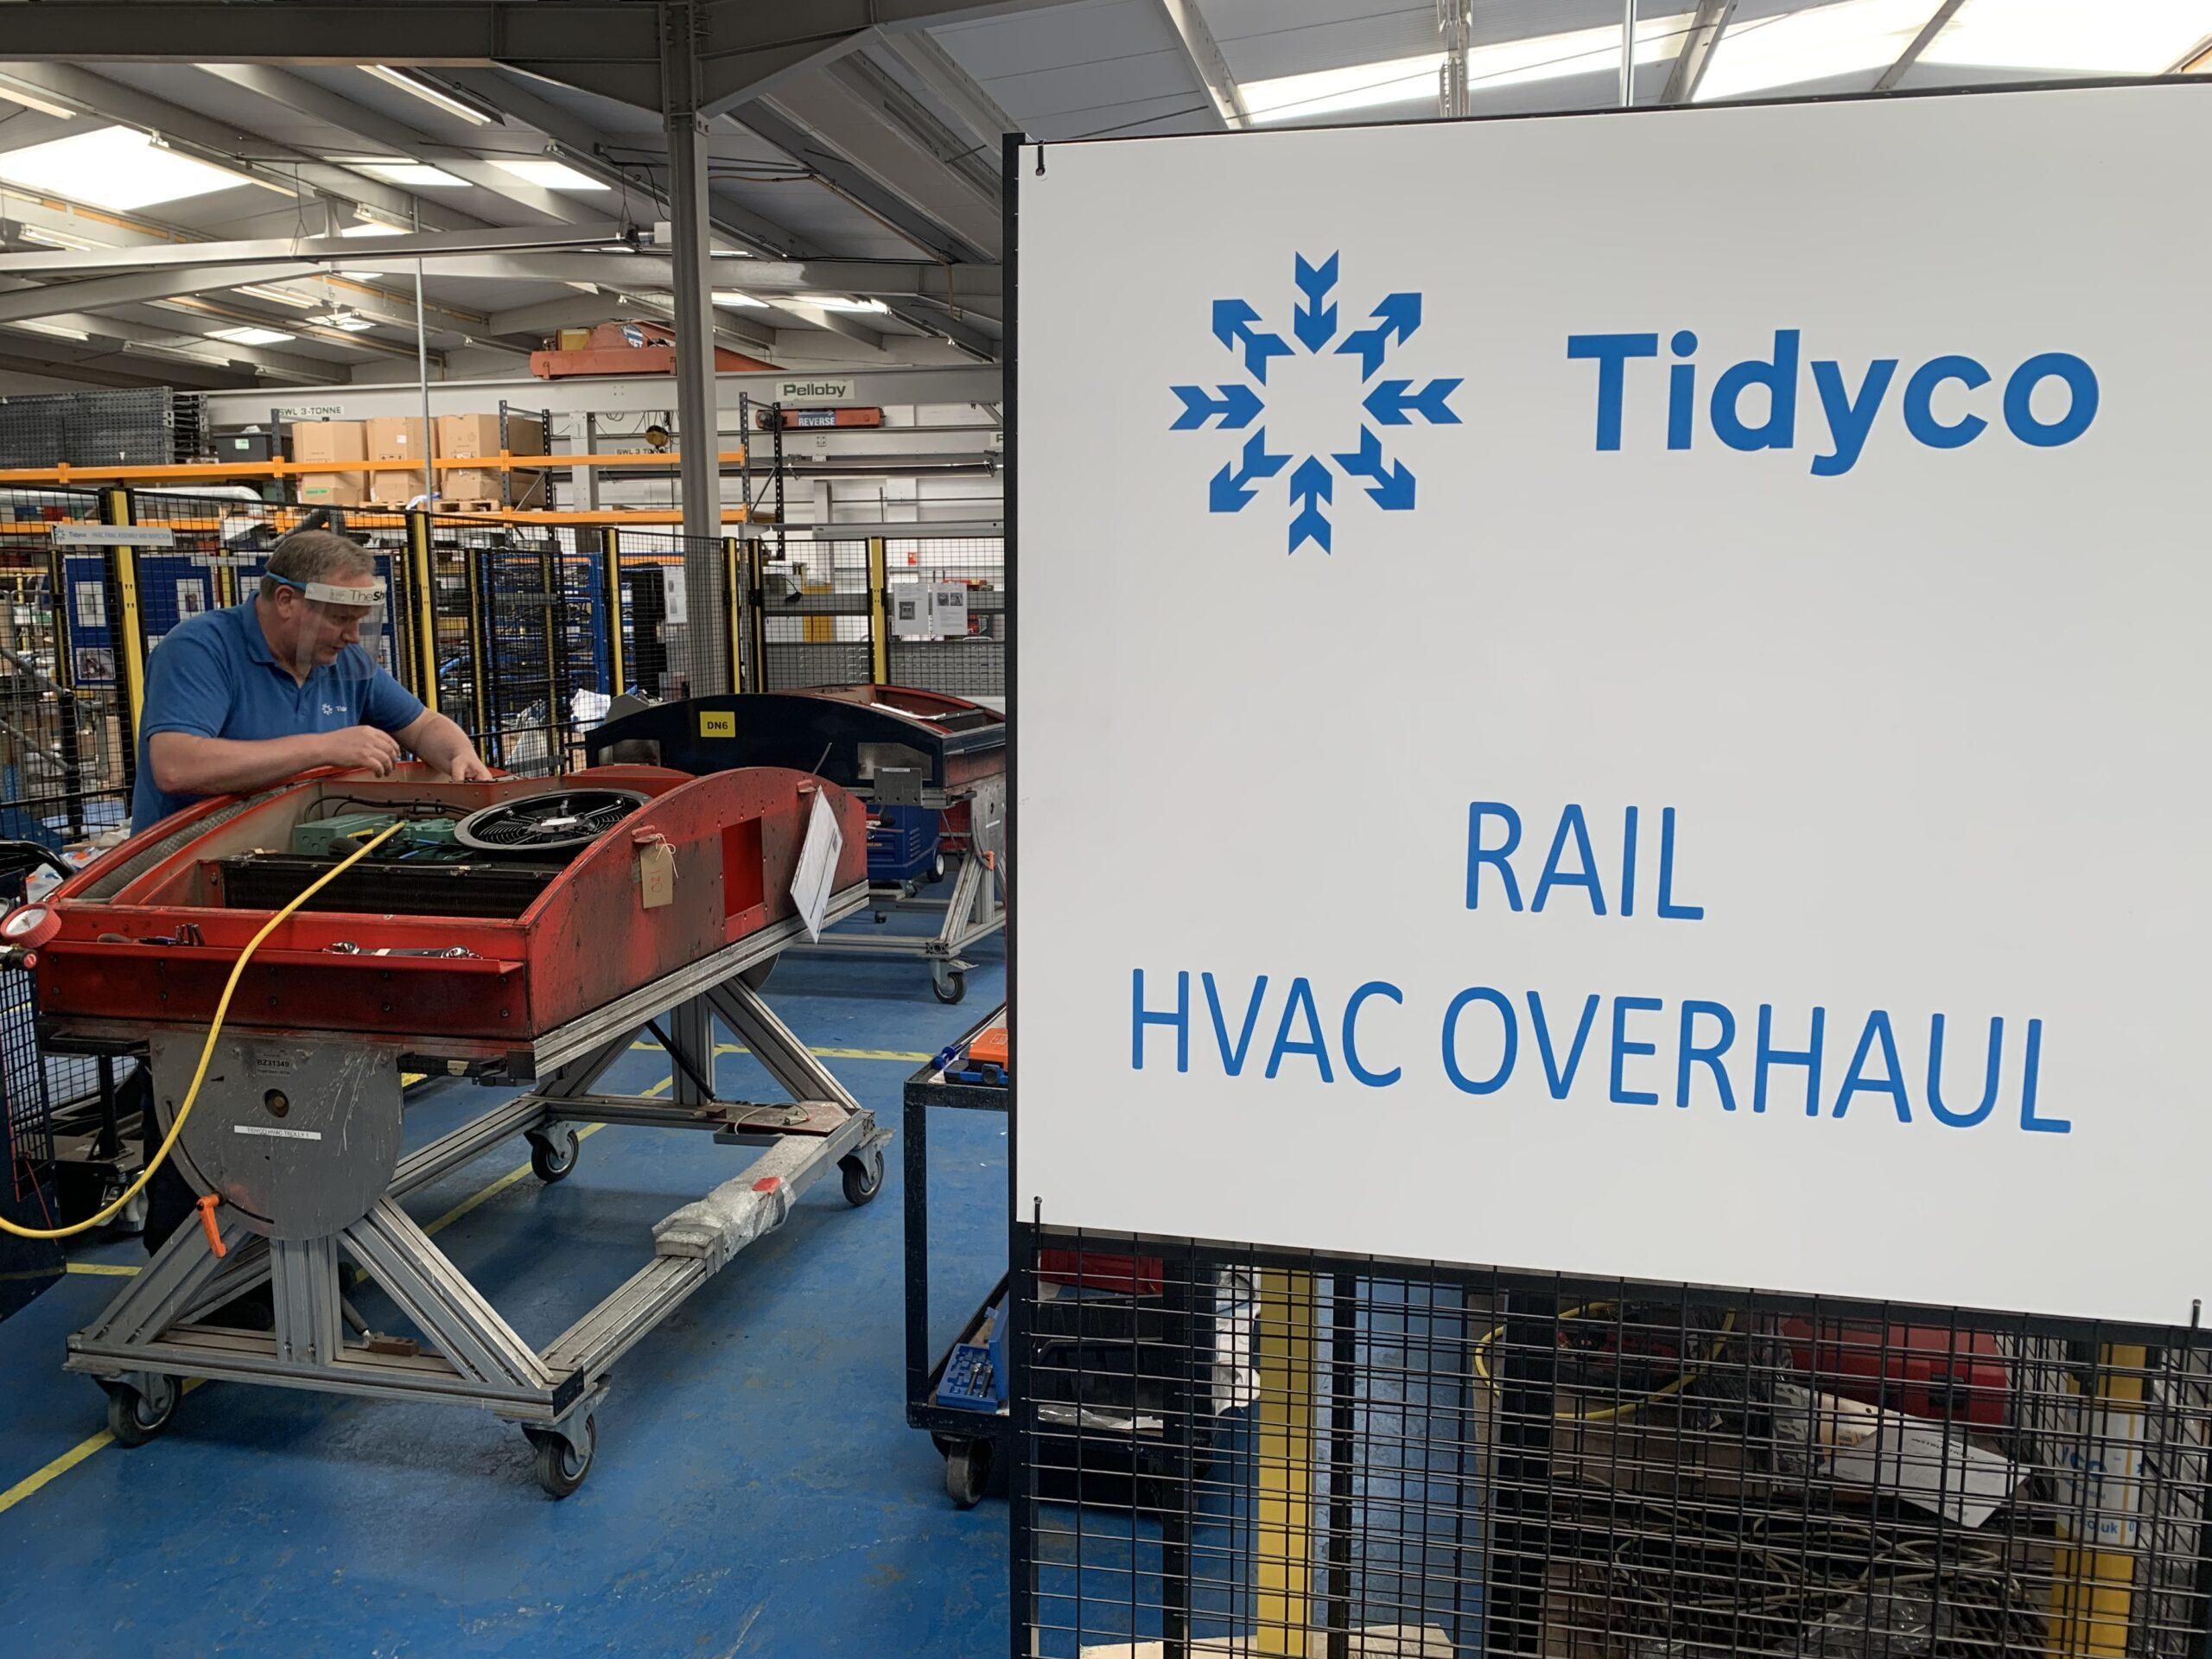 tidyco feature image